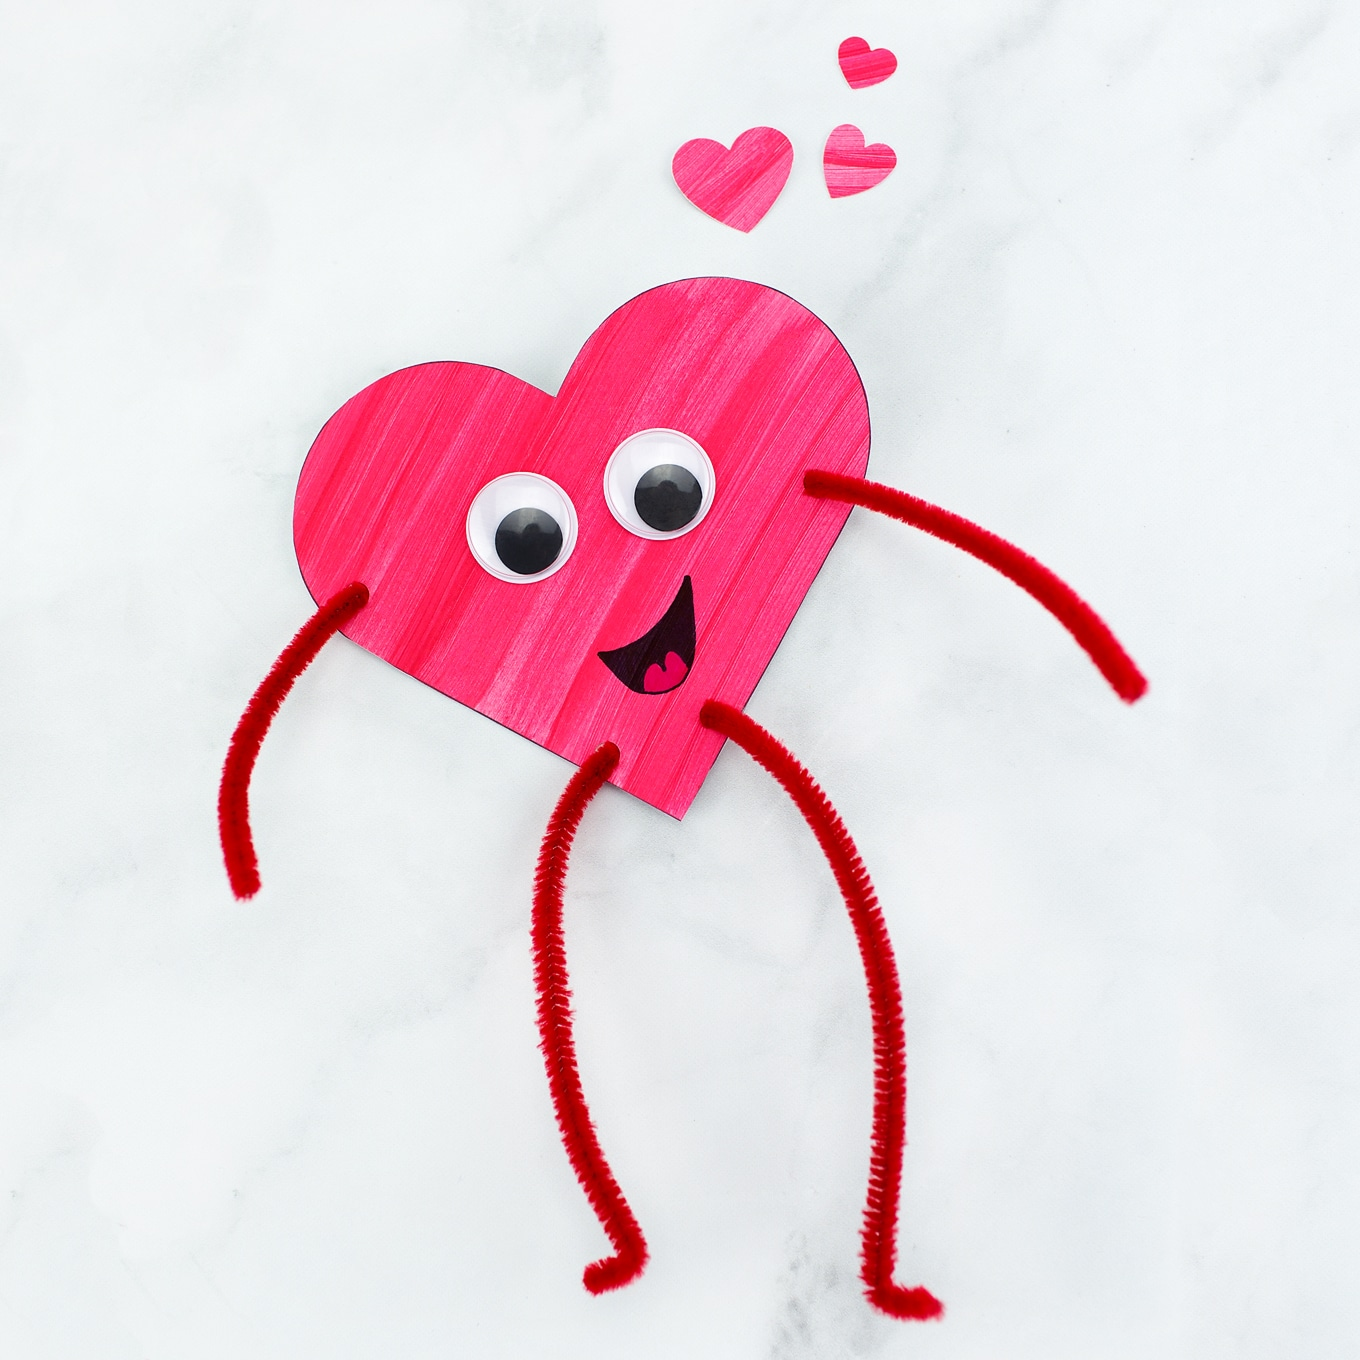 Heart Bud S Easy Valentine S Day Craft For Kids